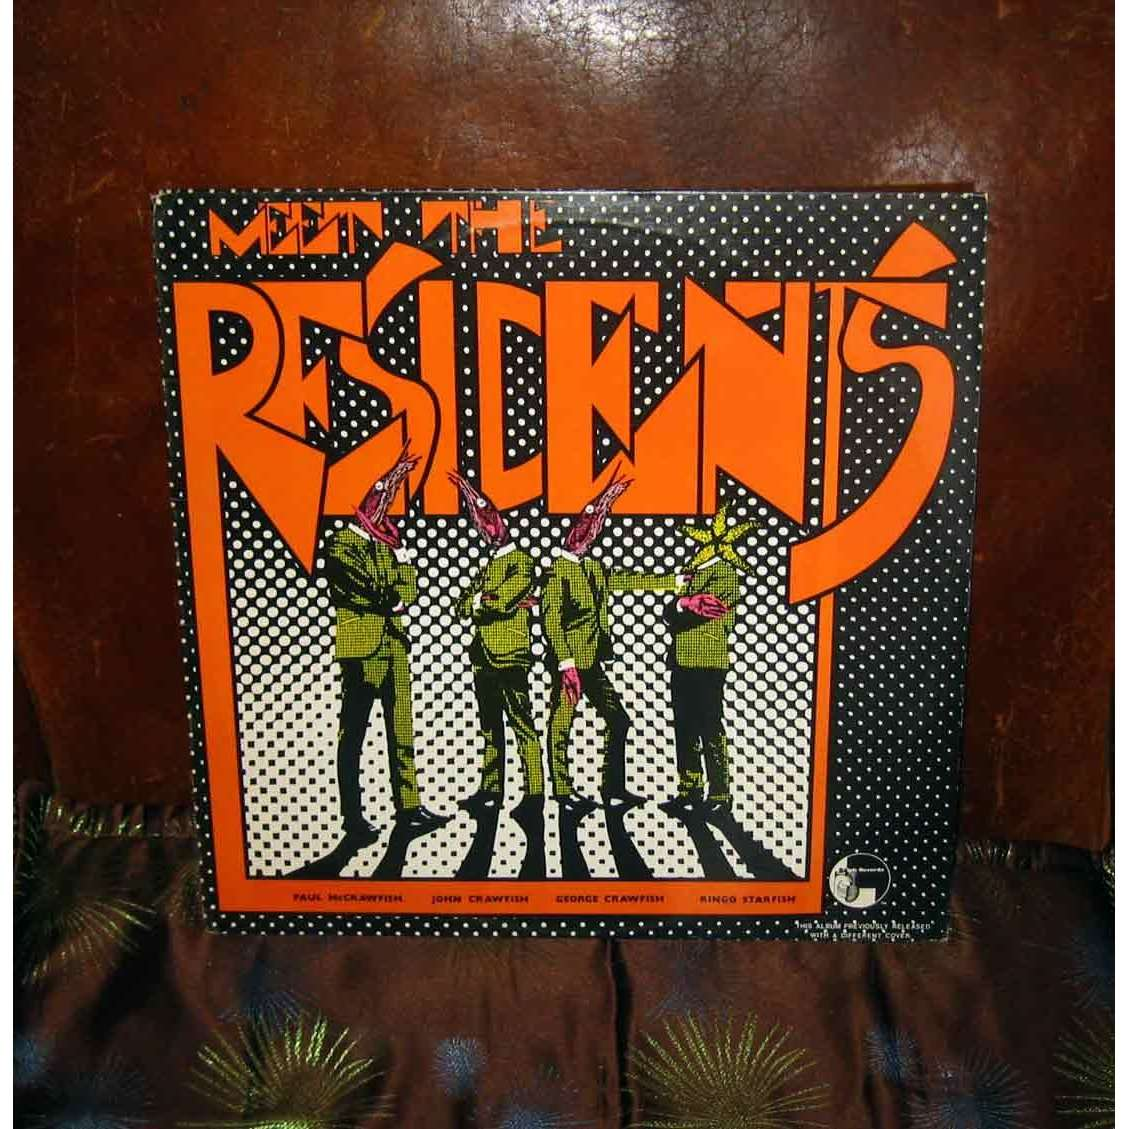 meet the residents album cover